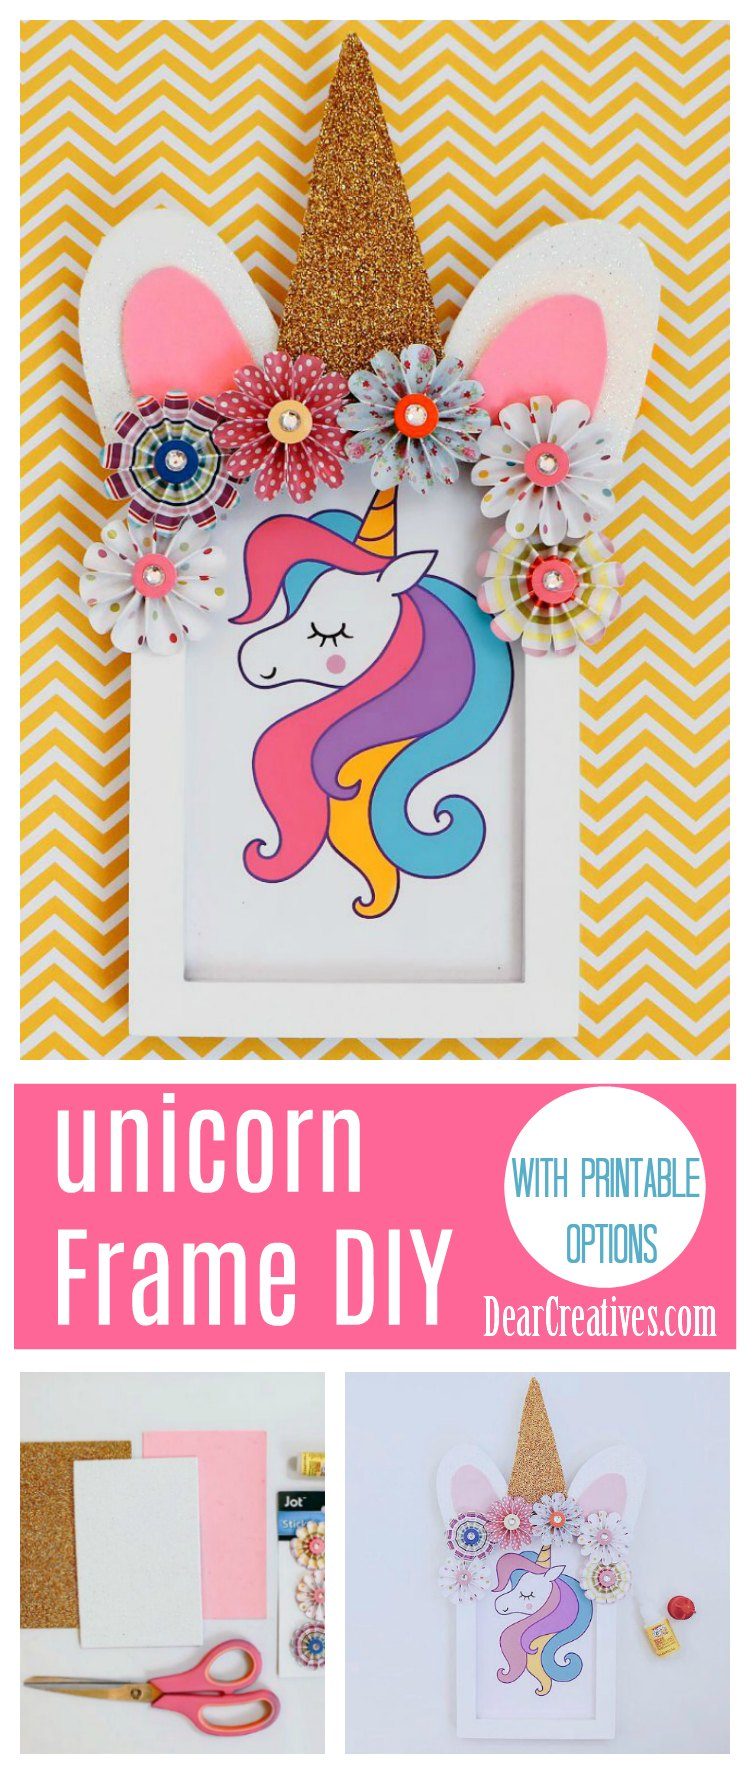 Unicorn Frame DIY is an Easy Unicorn Crafts Idea to Make